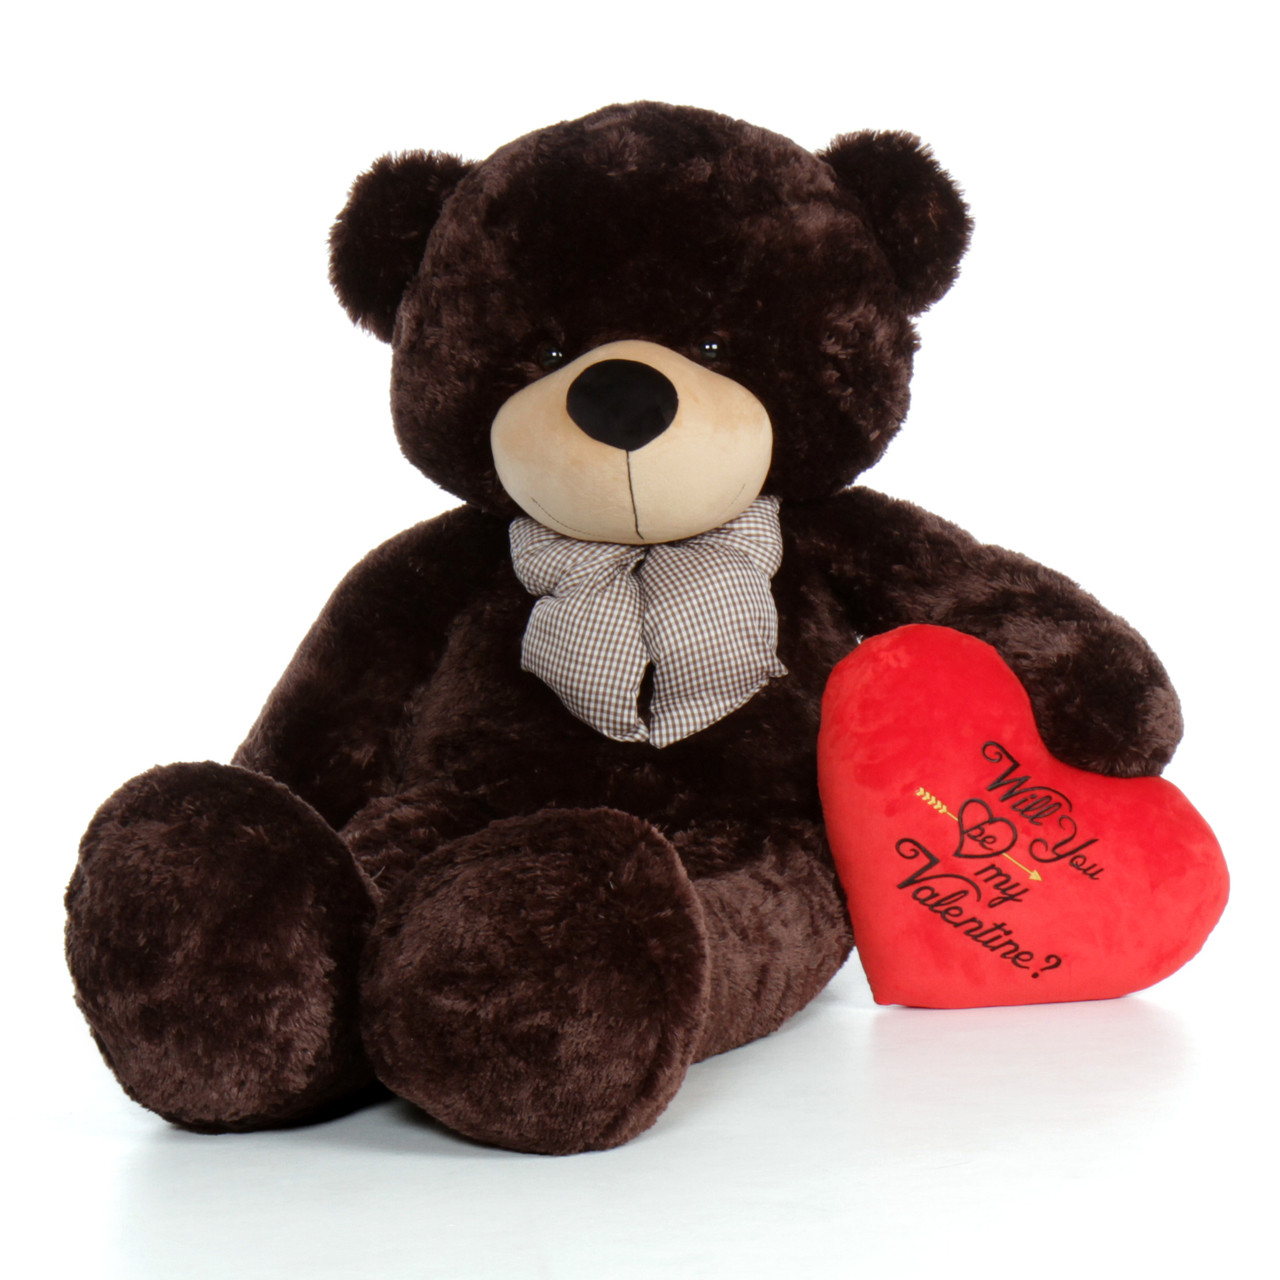 60in chocolate brown valentines day teddy bear brownie cuddles with red heart will you be - Giant Teddy Bear For Valentines Day